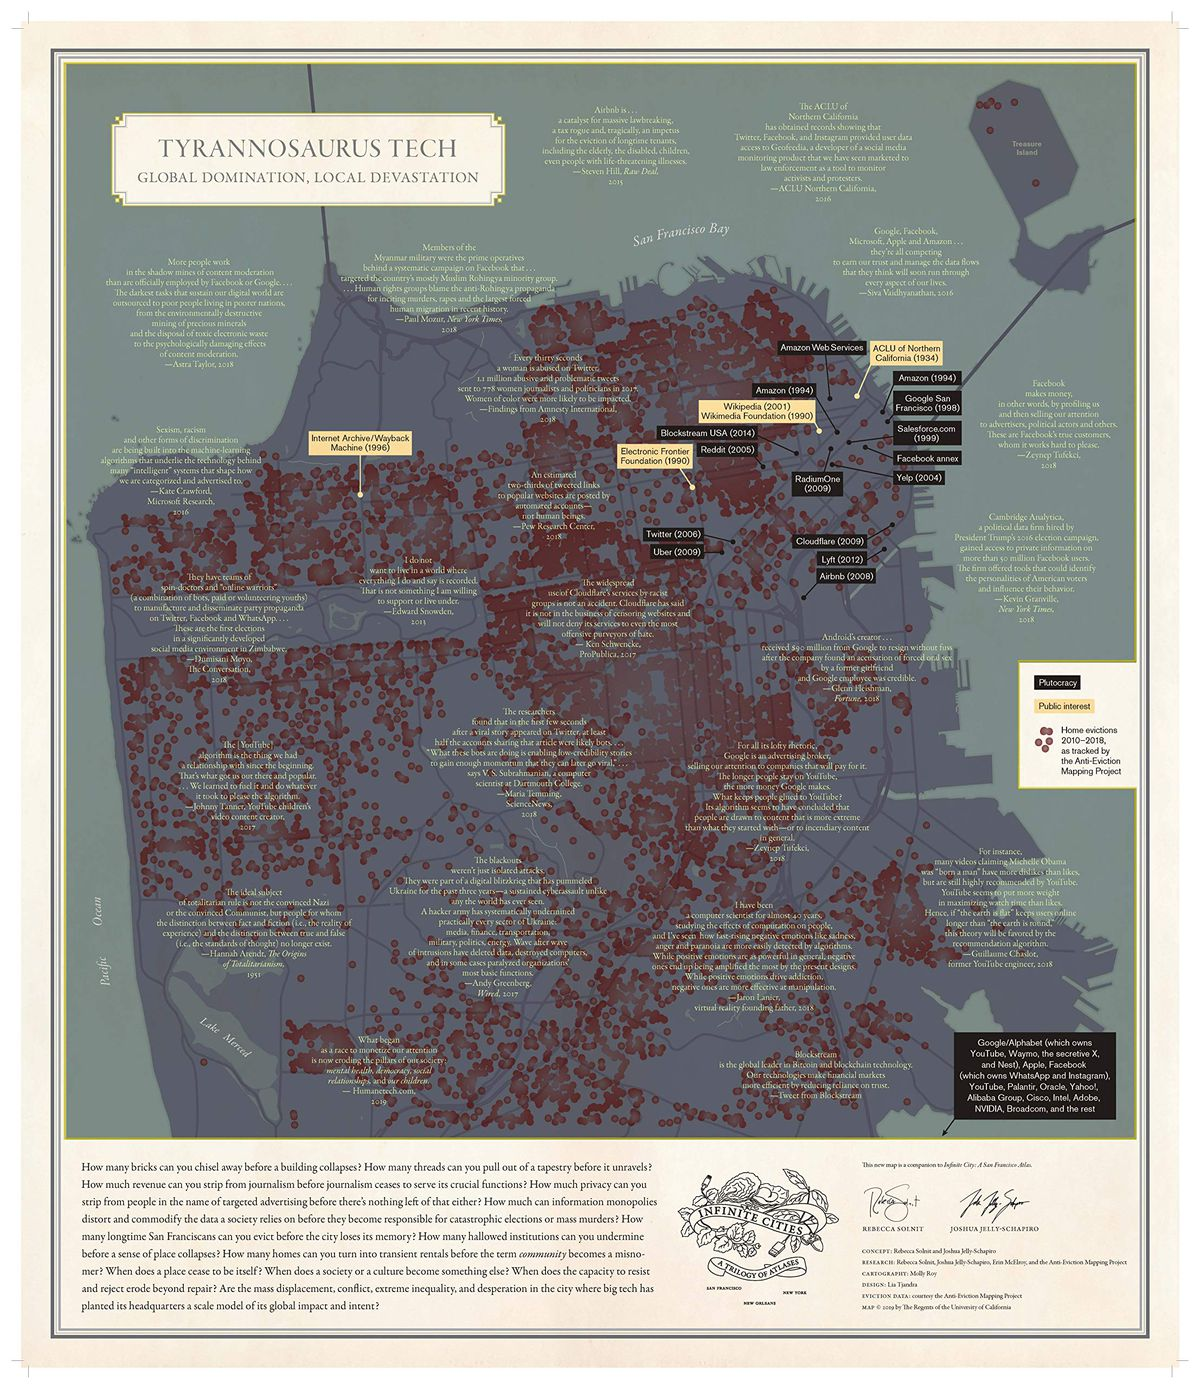 A map of San Francisco annotated with detailed information about the tech companies headquartered there.